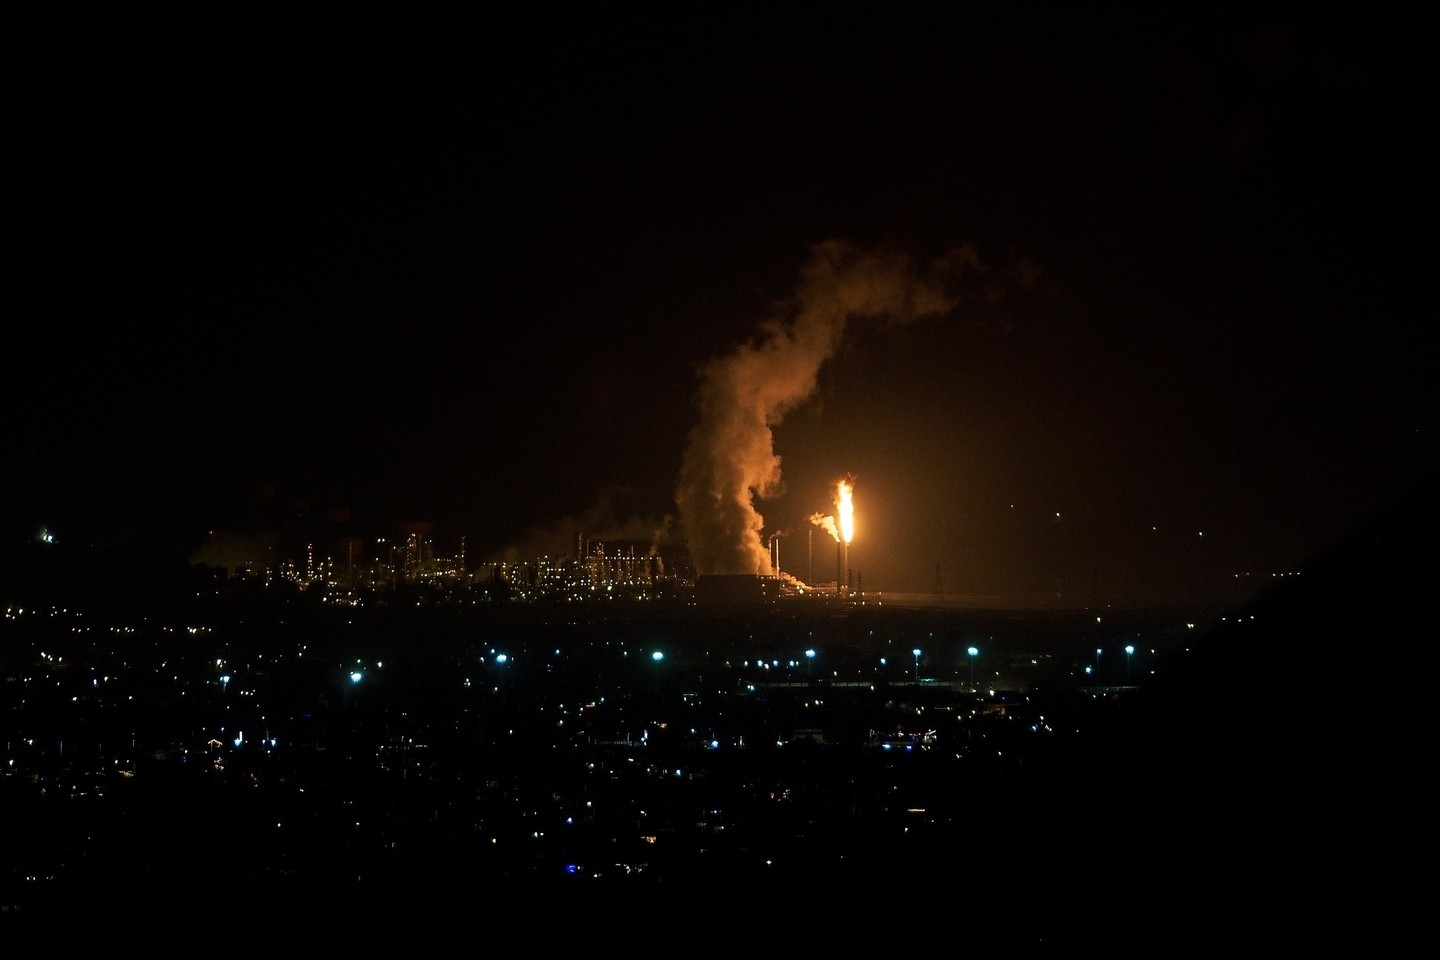 A cloud of smoke or steam wraps around the flames from a second round of flaring emanating from Chevron's Richmond refinery on Dec. 18, 2014.